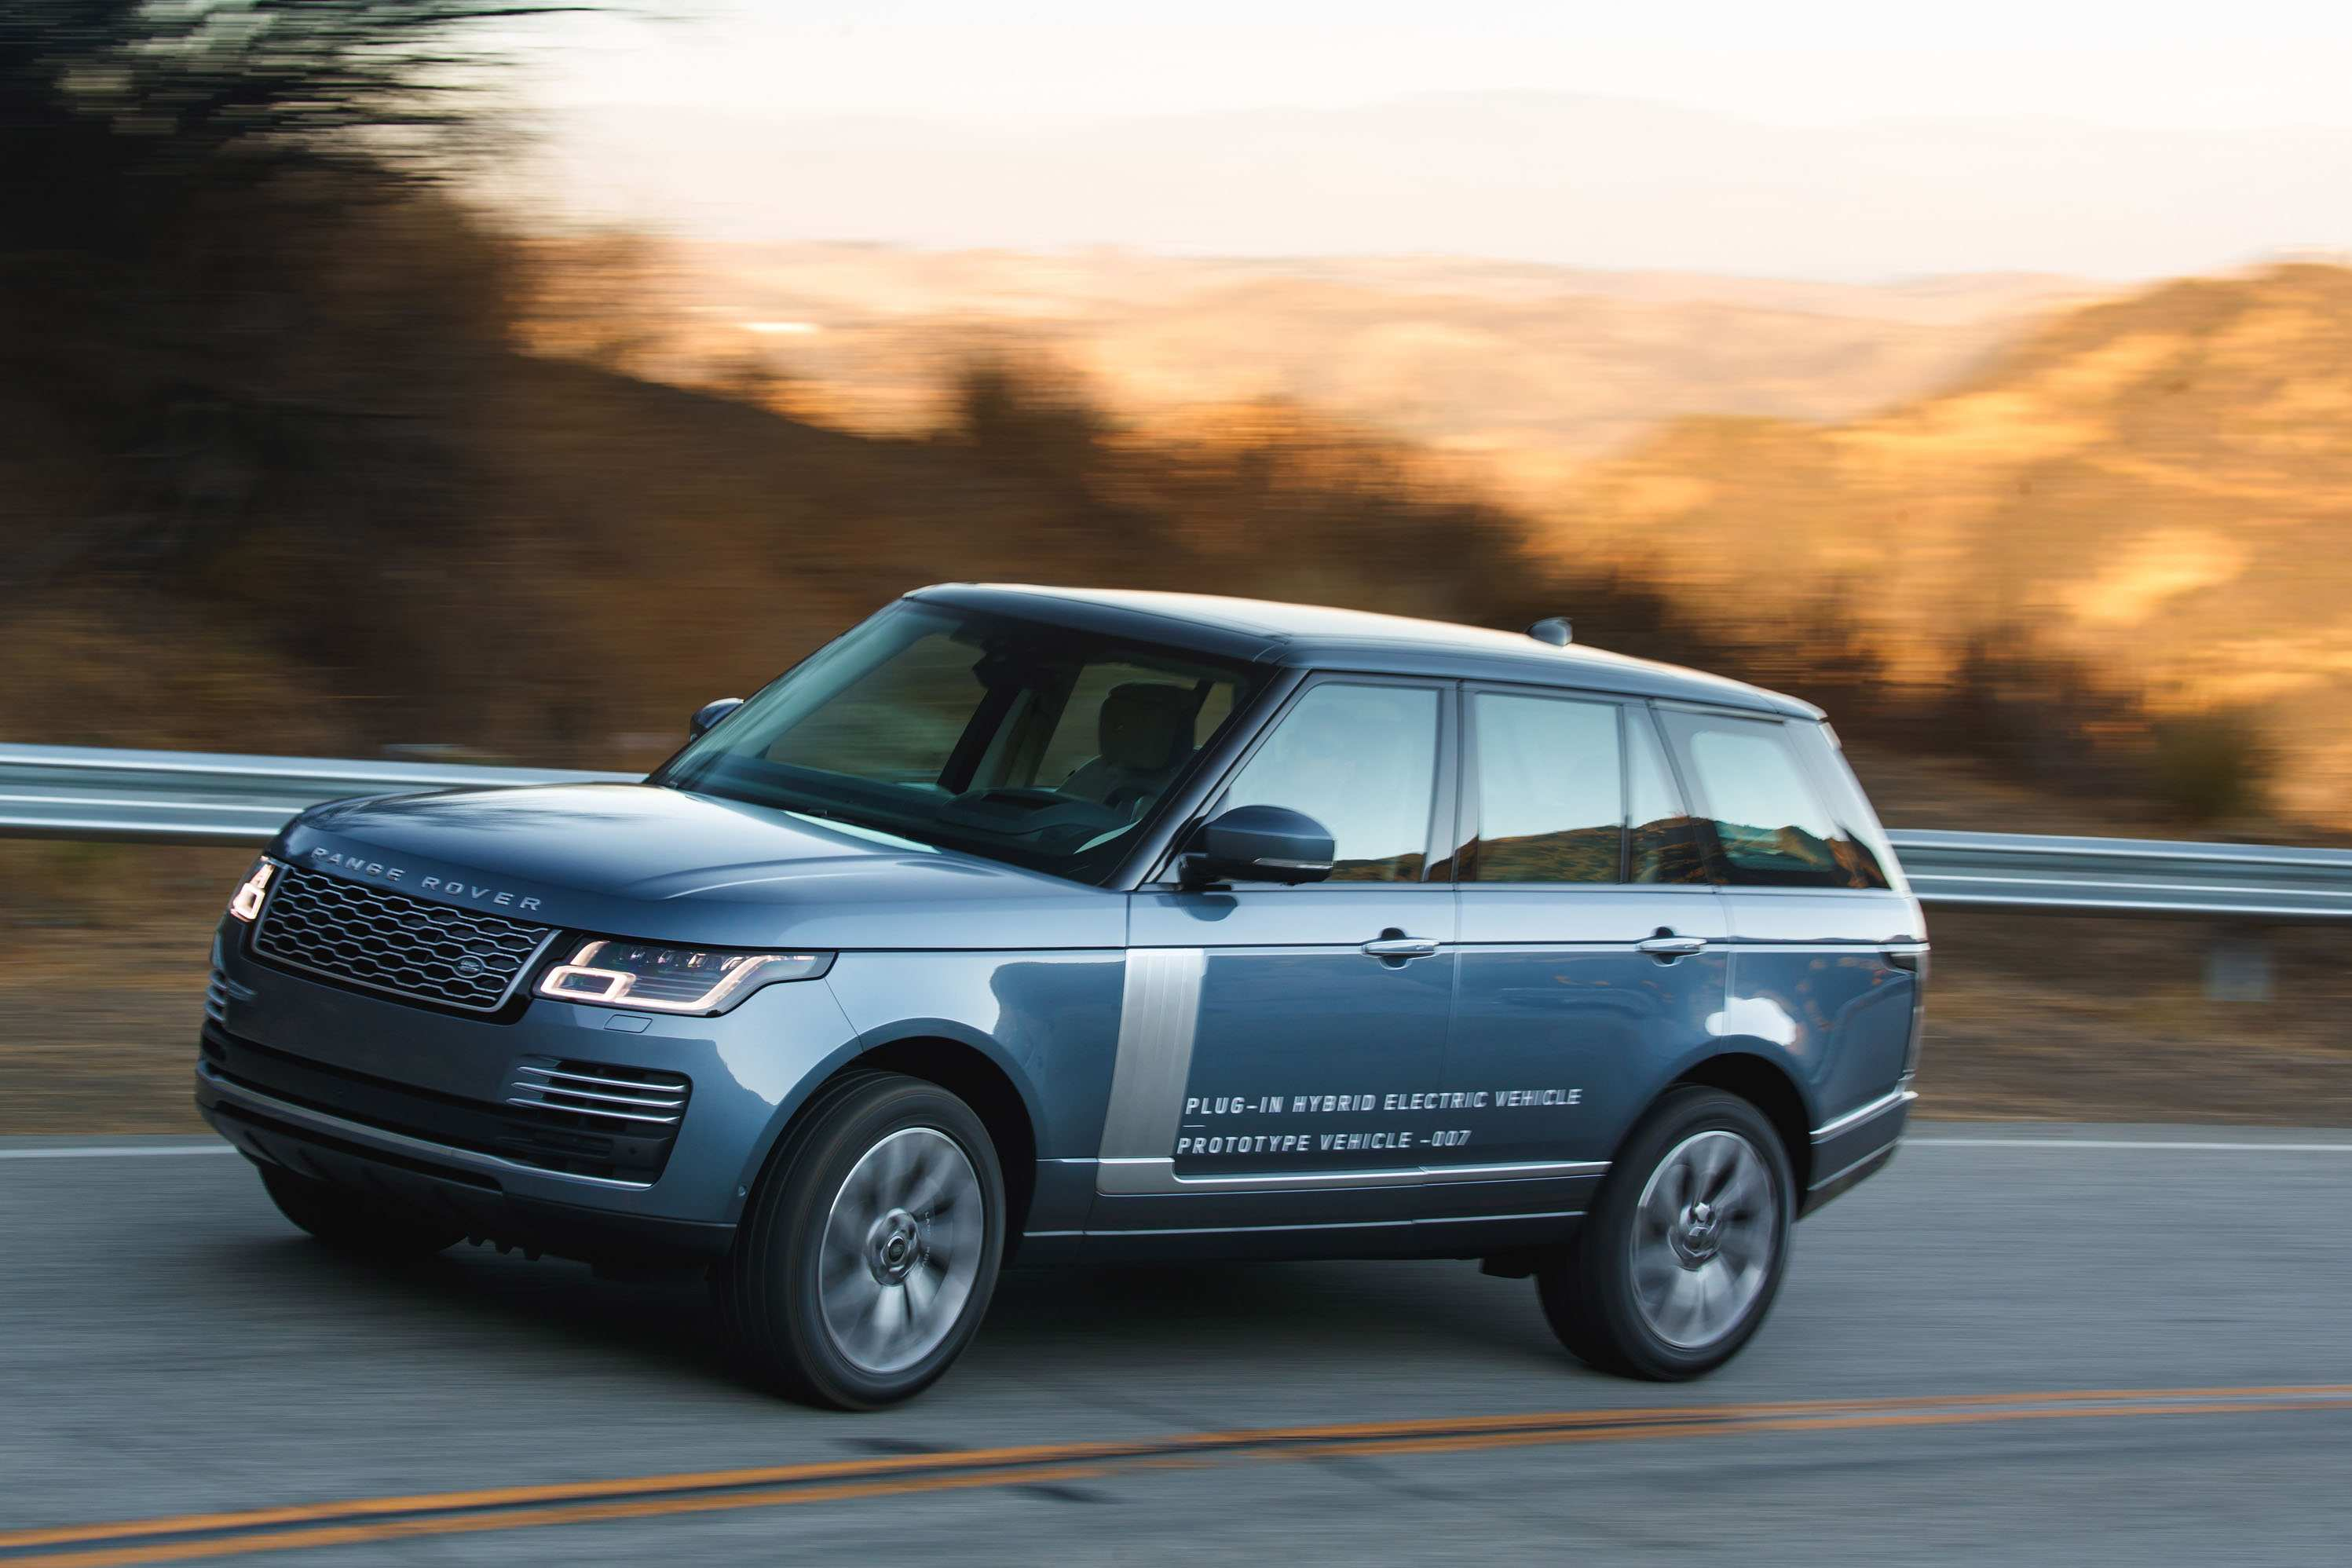 17 New 2019 Land Rover Hse Specs and Review with 2019 Land Rover Hse